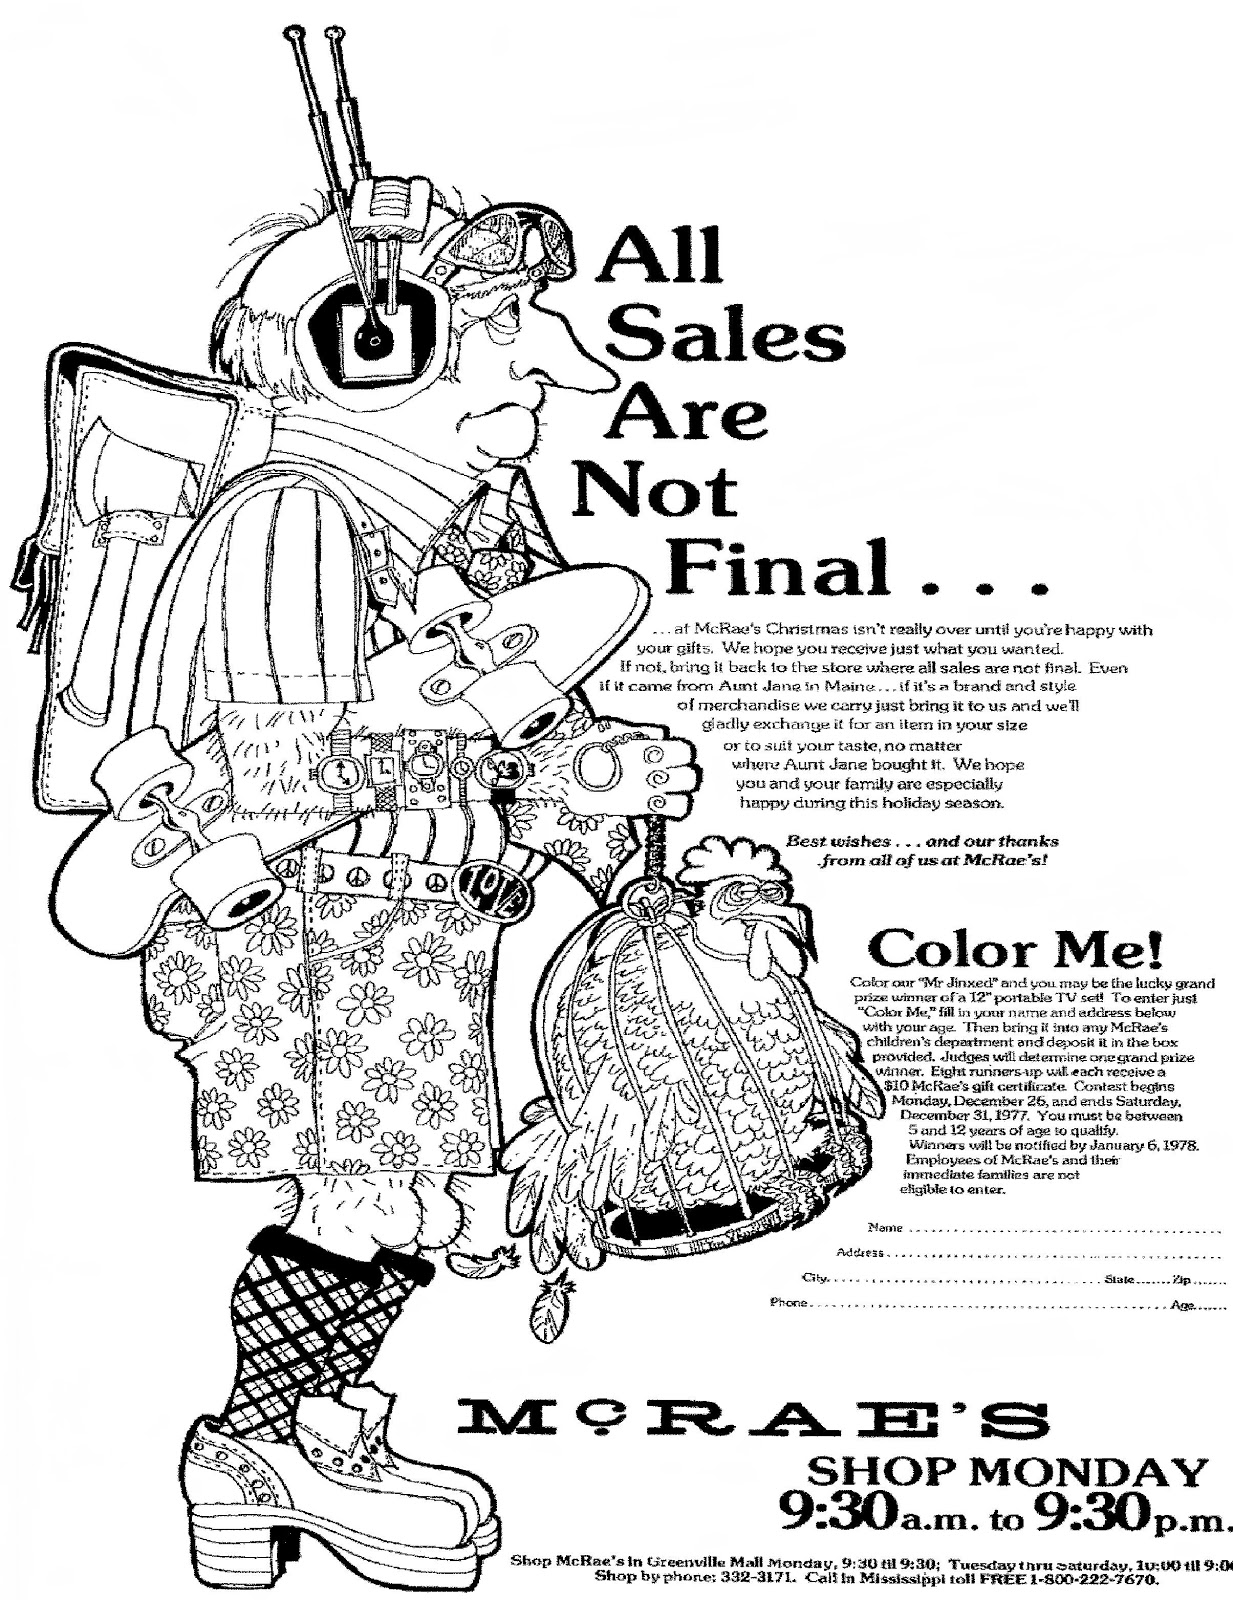 Mostly Paper Dolls Too!: ALL SALES ARE NOT FINAL